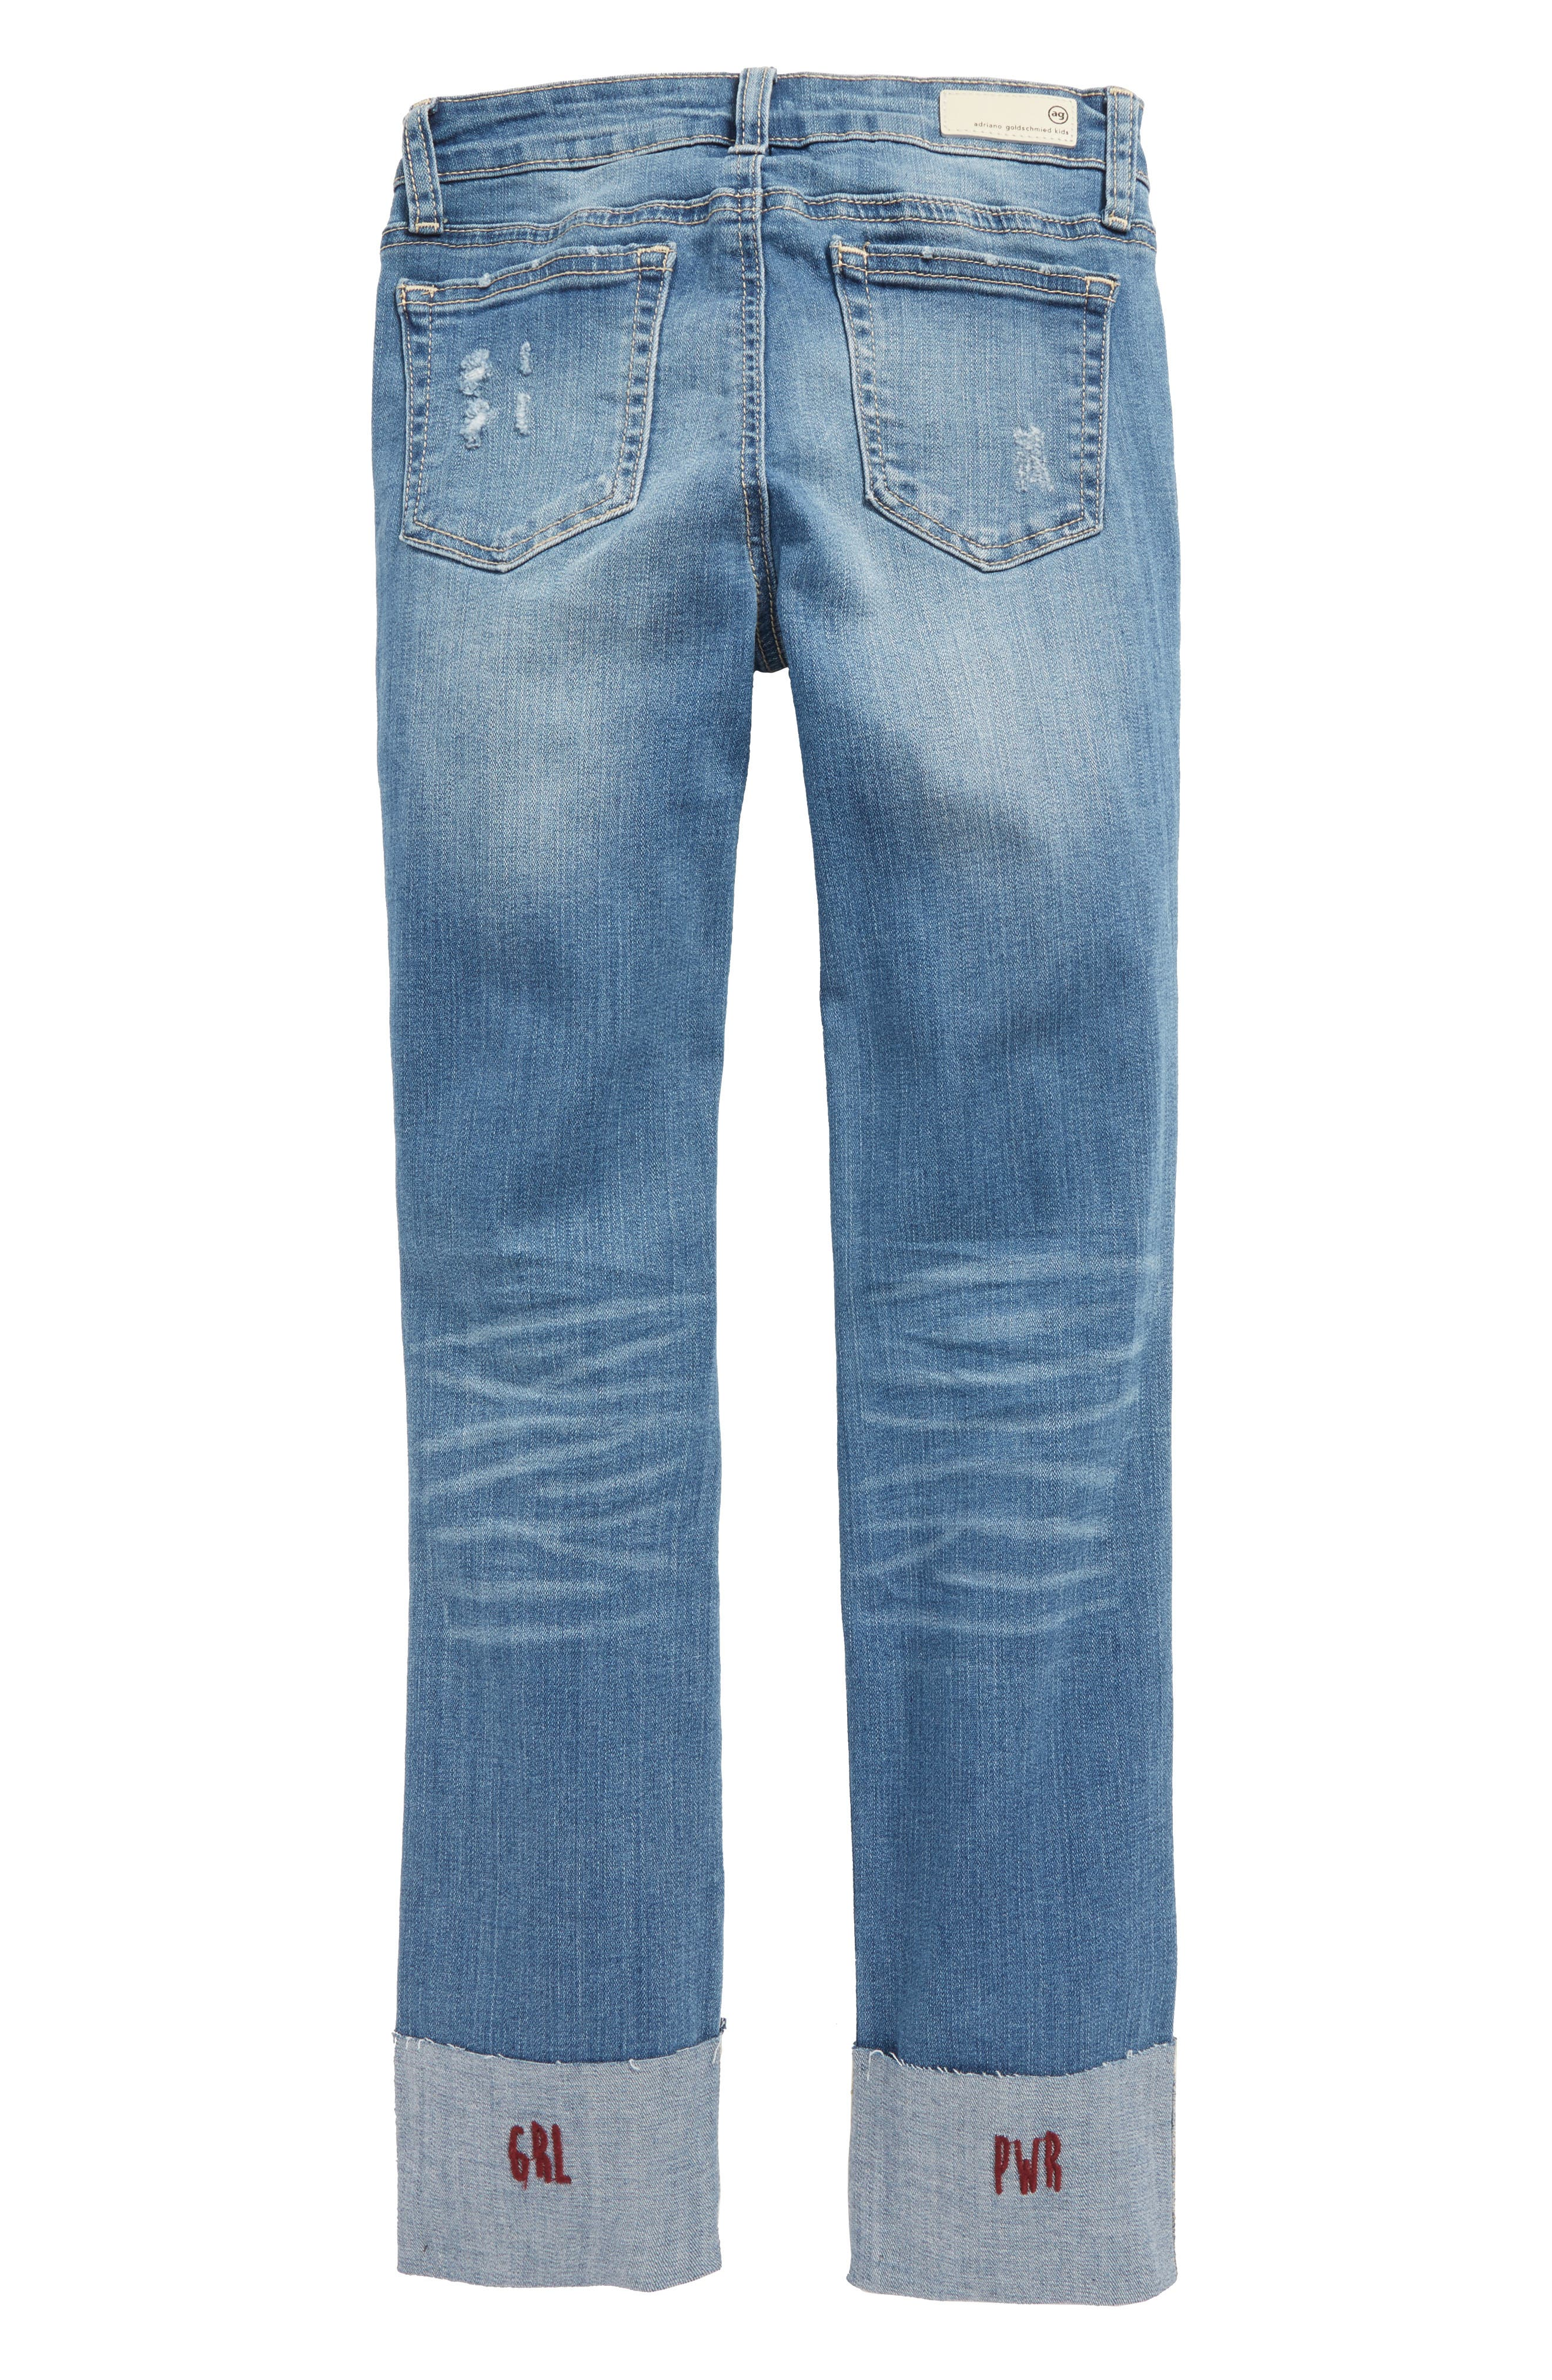 Distressed Cuffed Jeans,                             Alternate thumbnail 2, color,                             Vintage Brilliant Blue